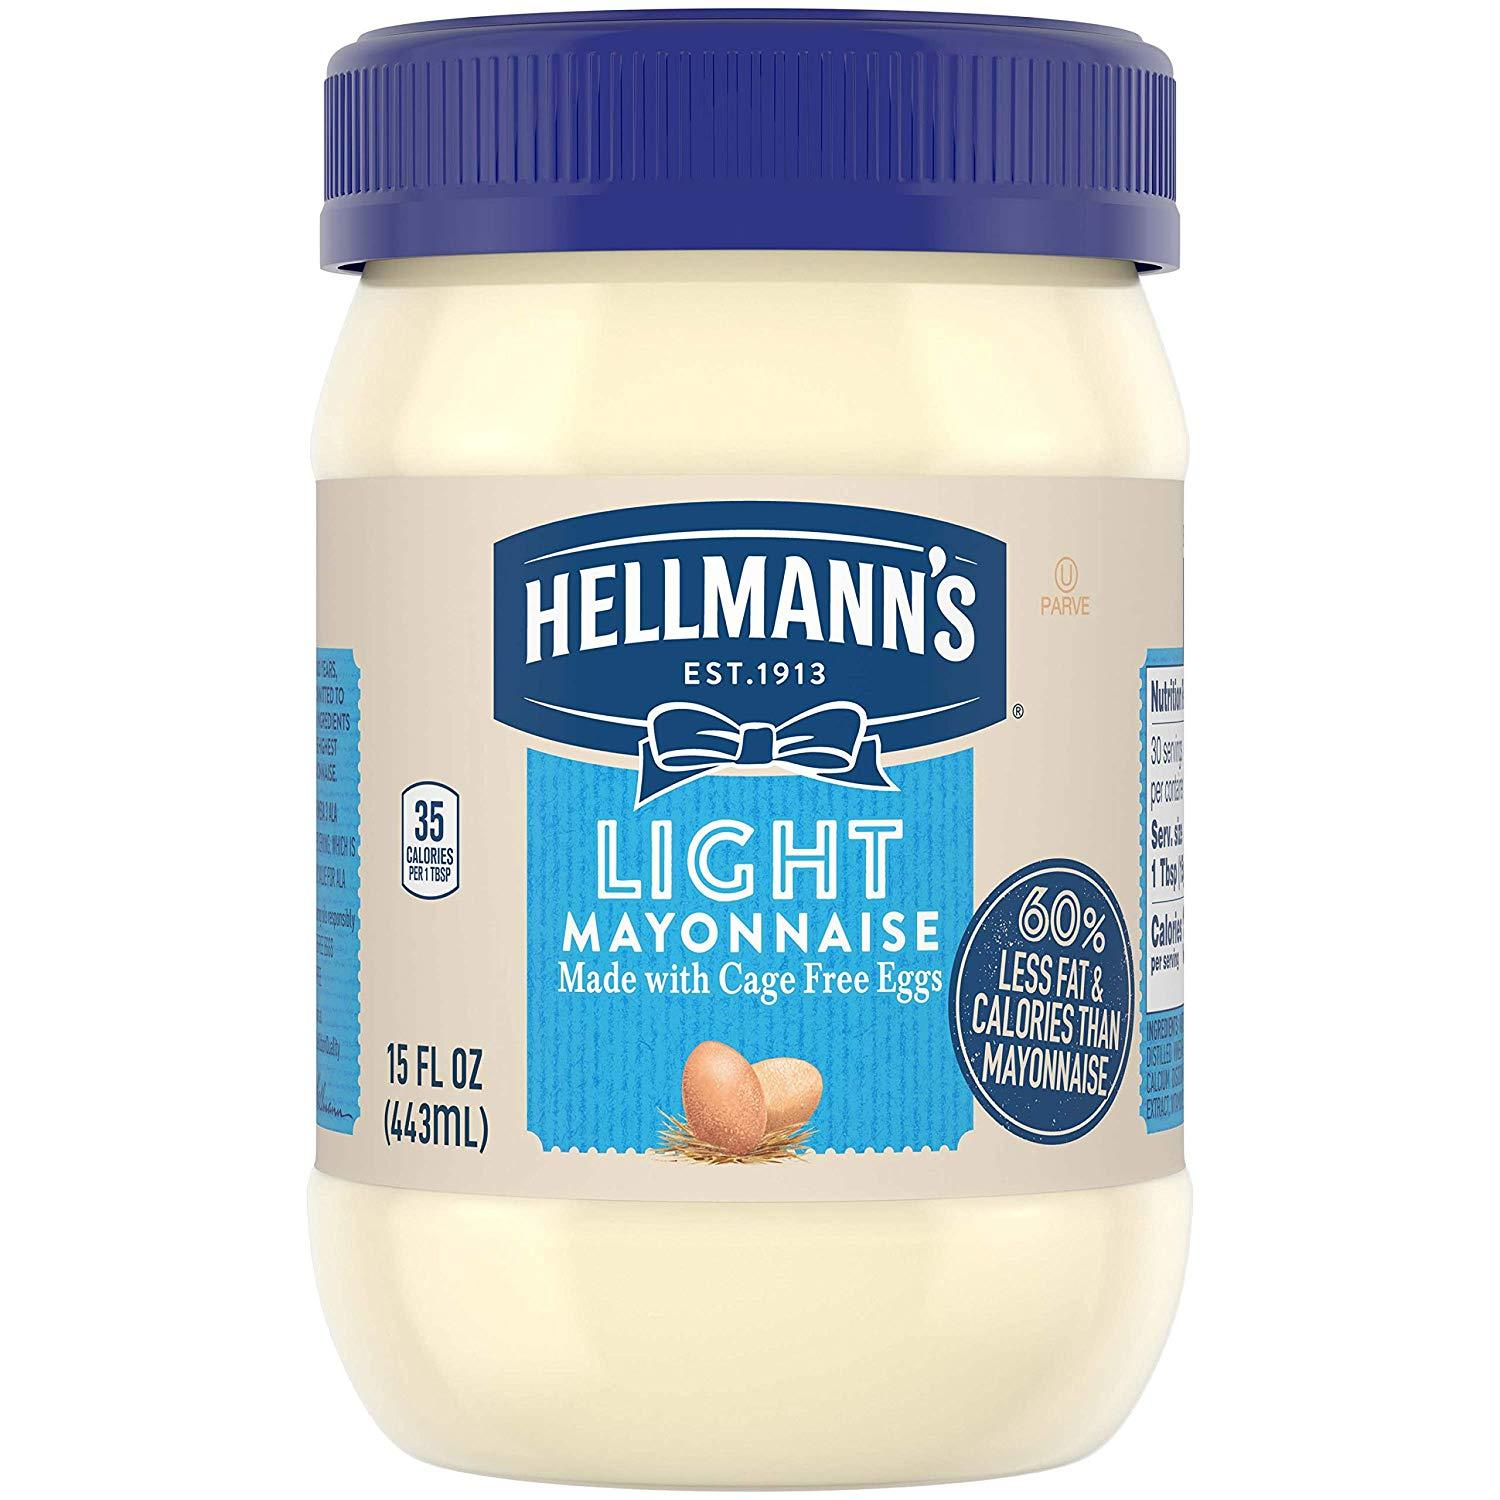 stl>Hellman's Light Mayonnaise -15oz